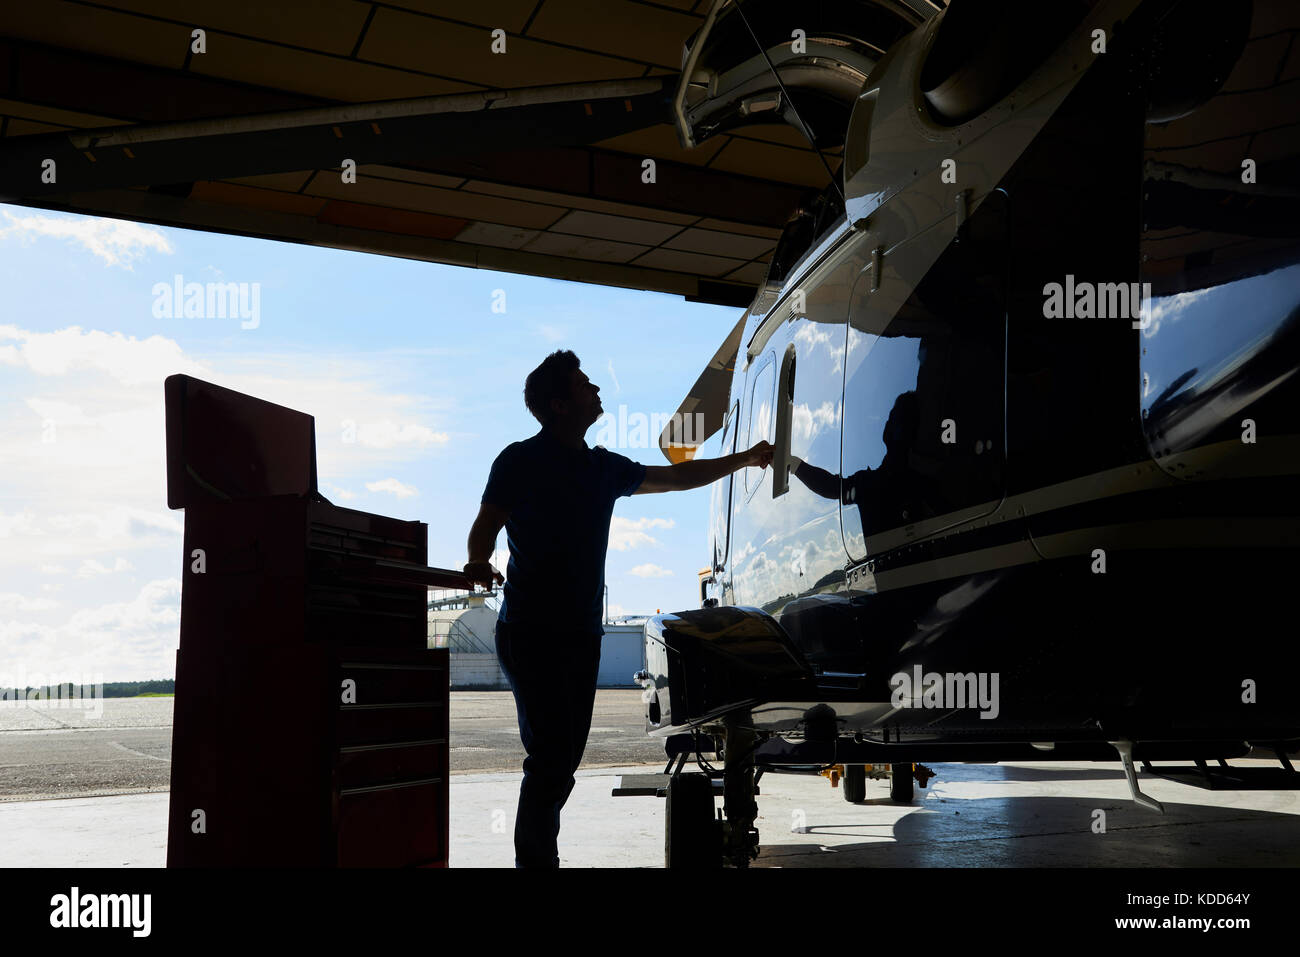 Silhouette Of Male Aero Engineer Working On Helicopter In Hangar - Stock Image